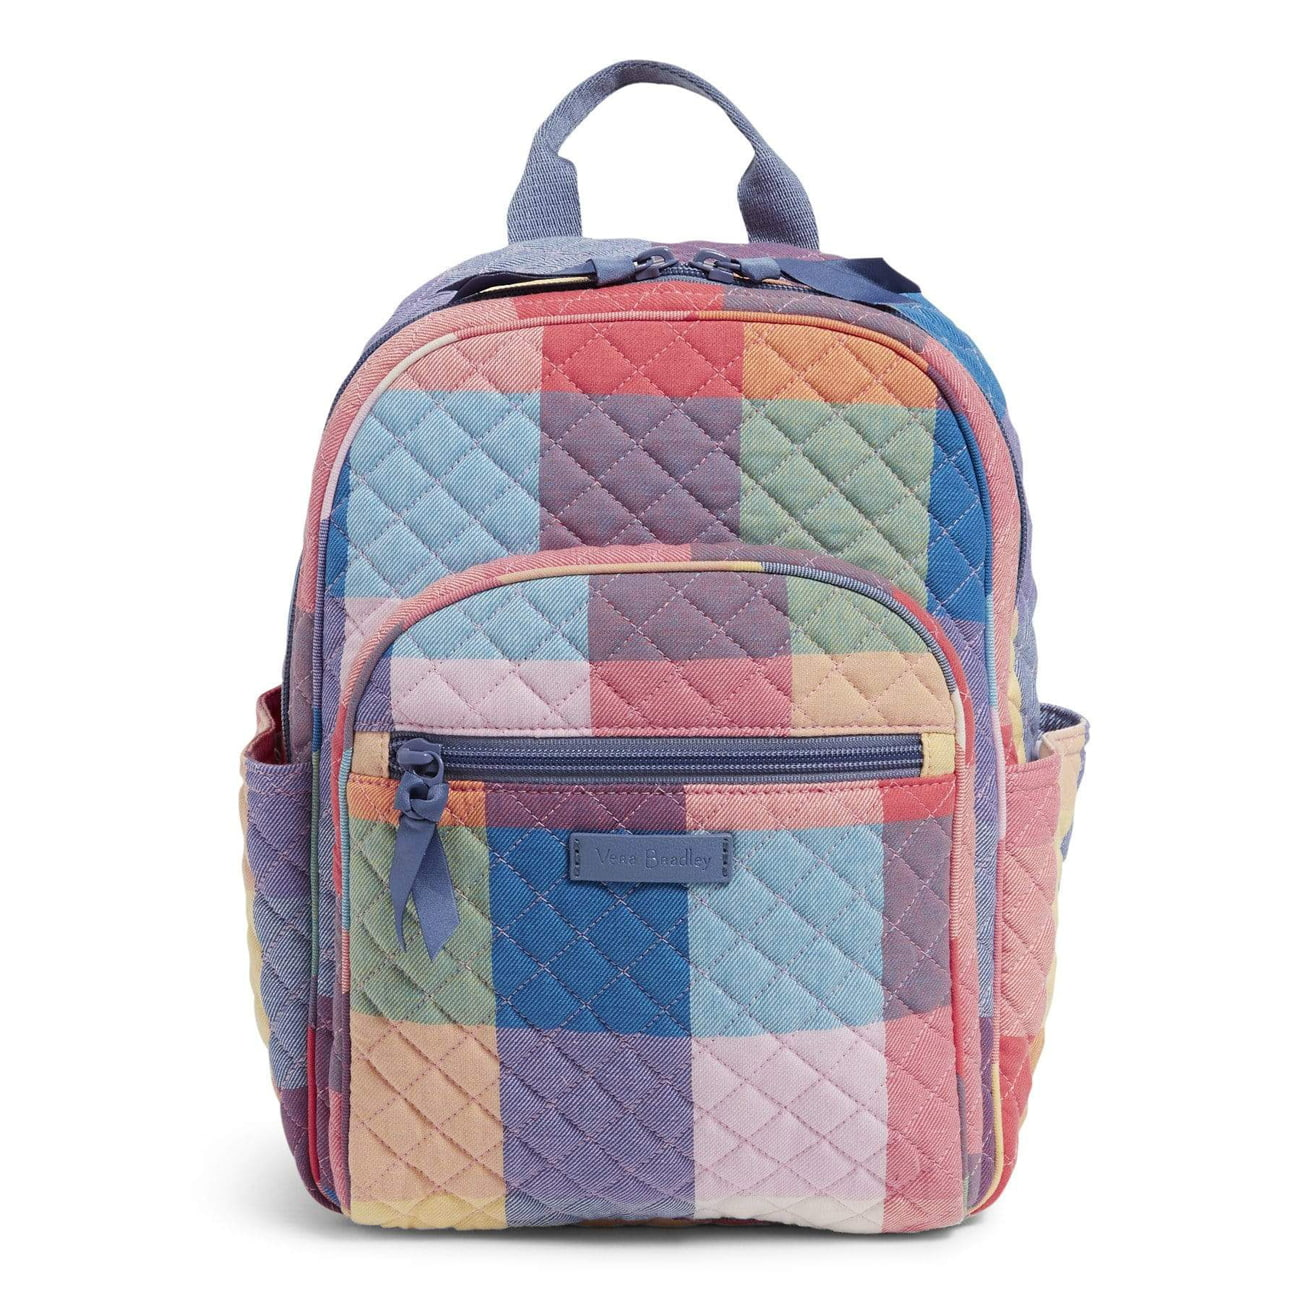 Best Small Backpack for Women